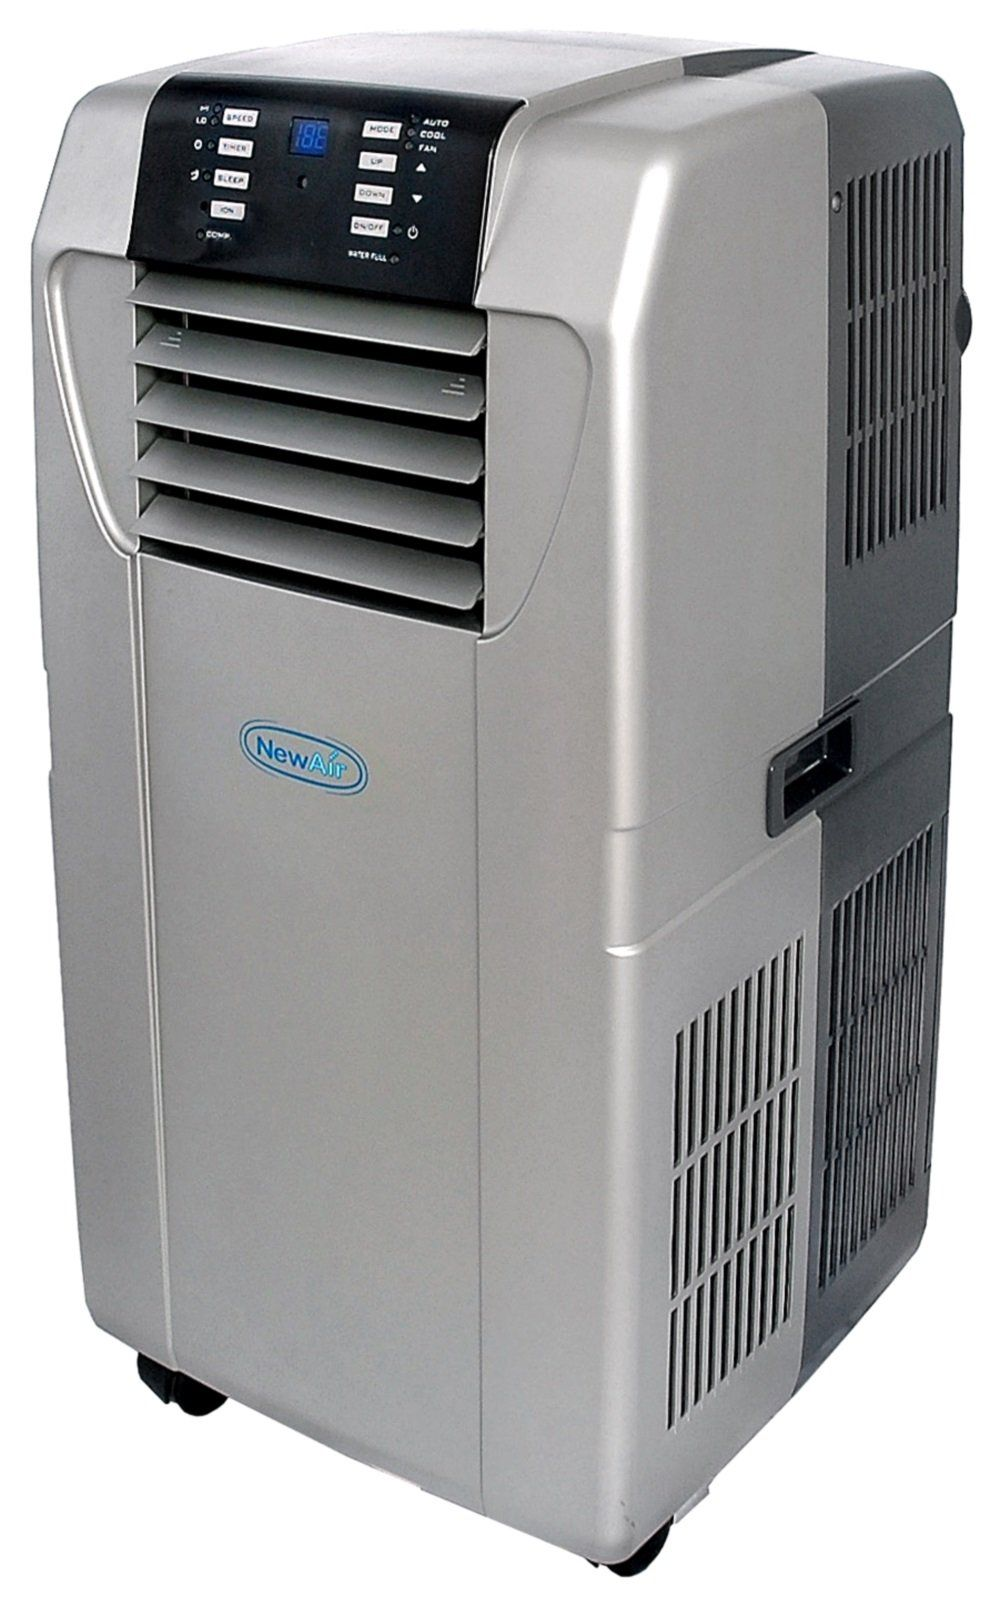 NewAir AC12000E 12, 000 BTU Portable Air